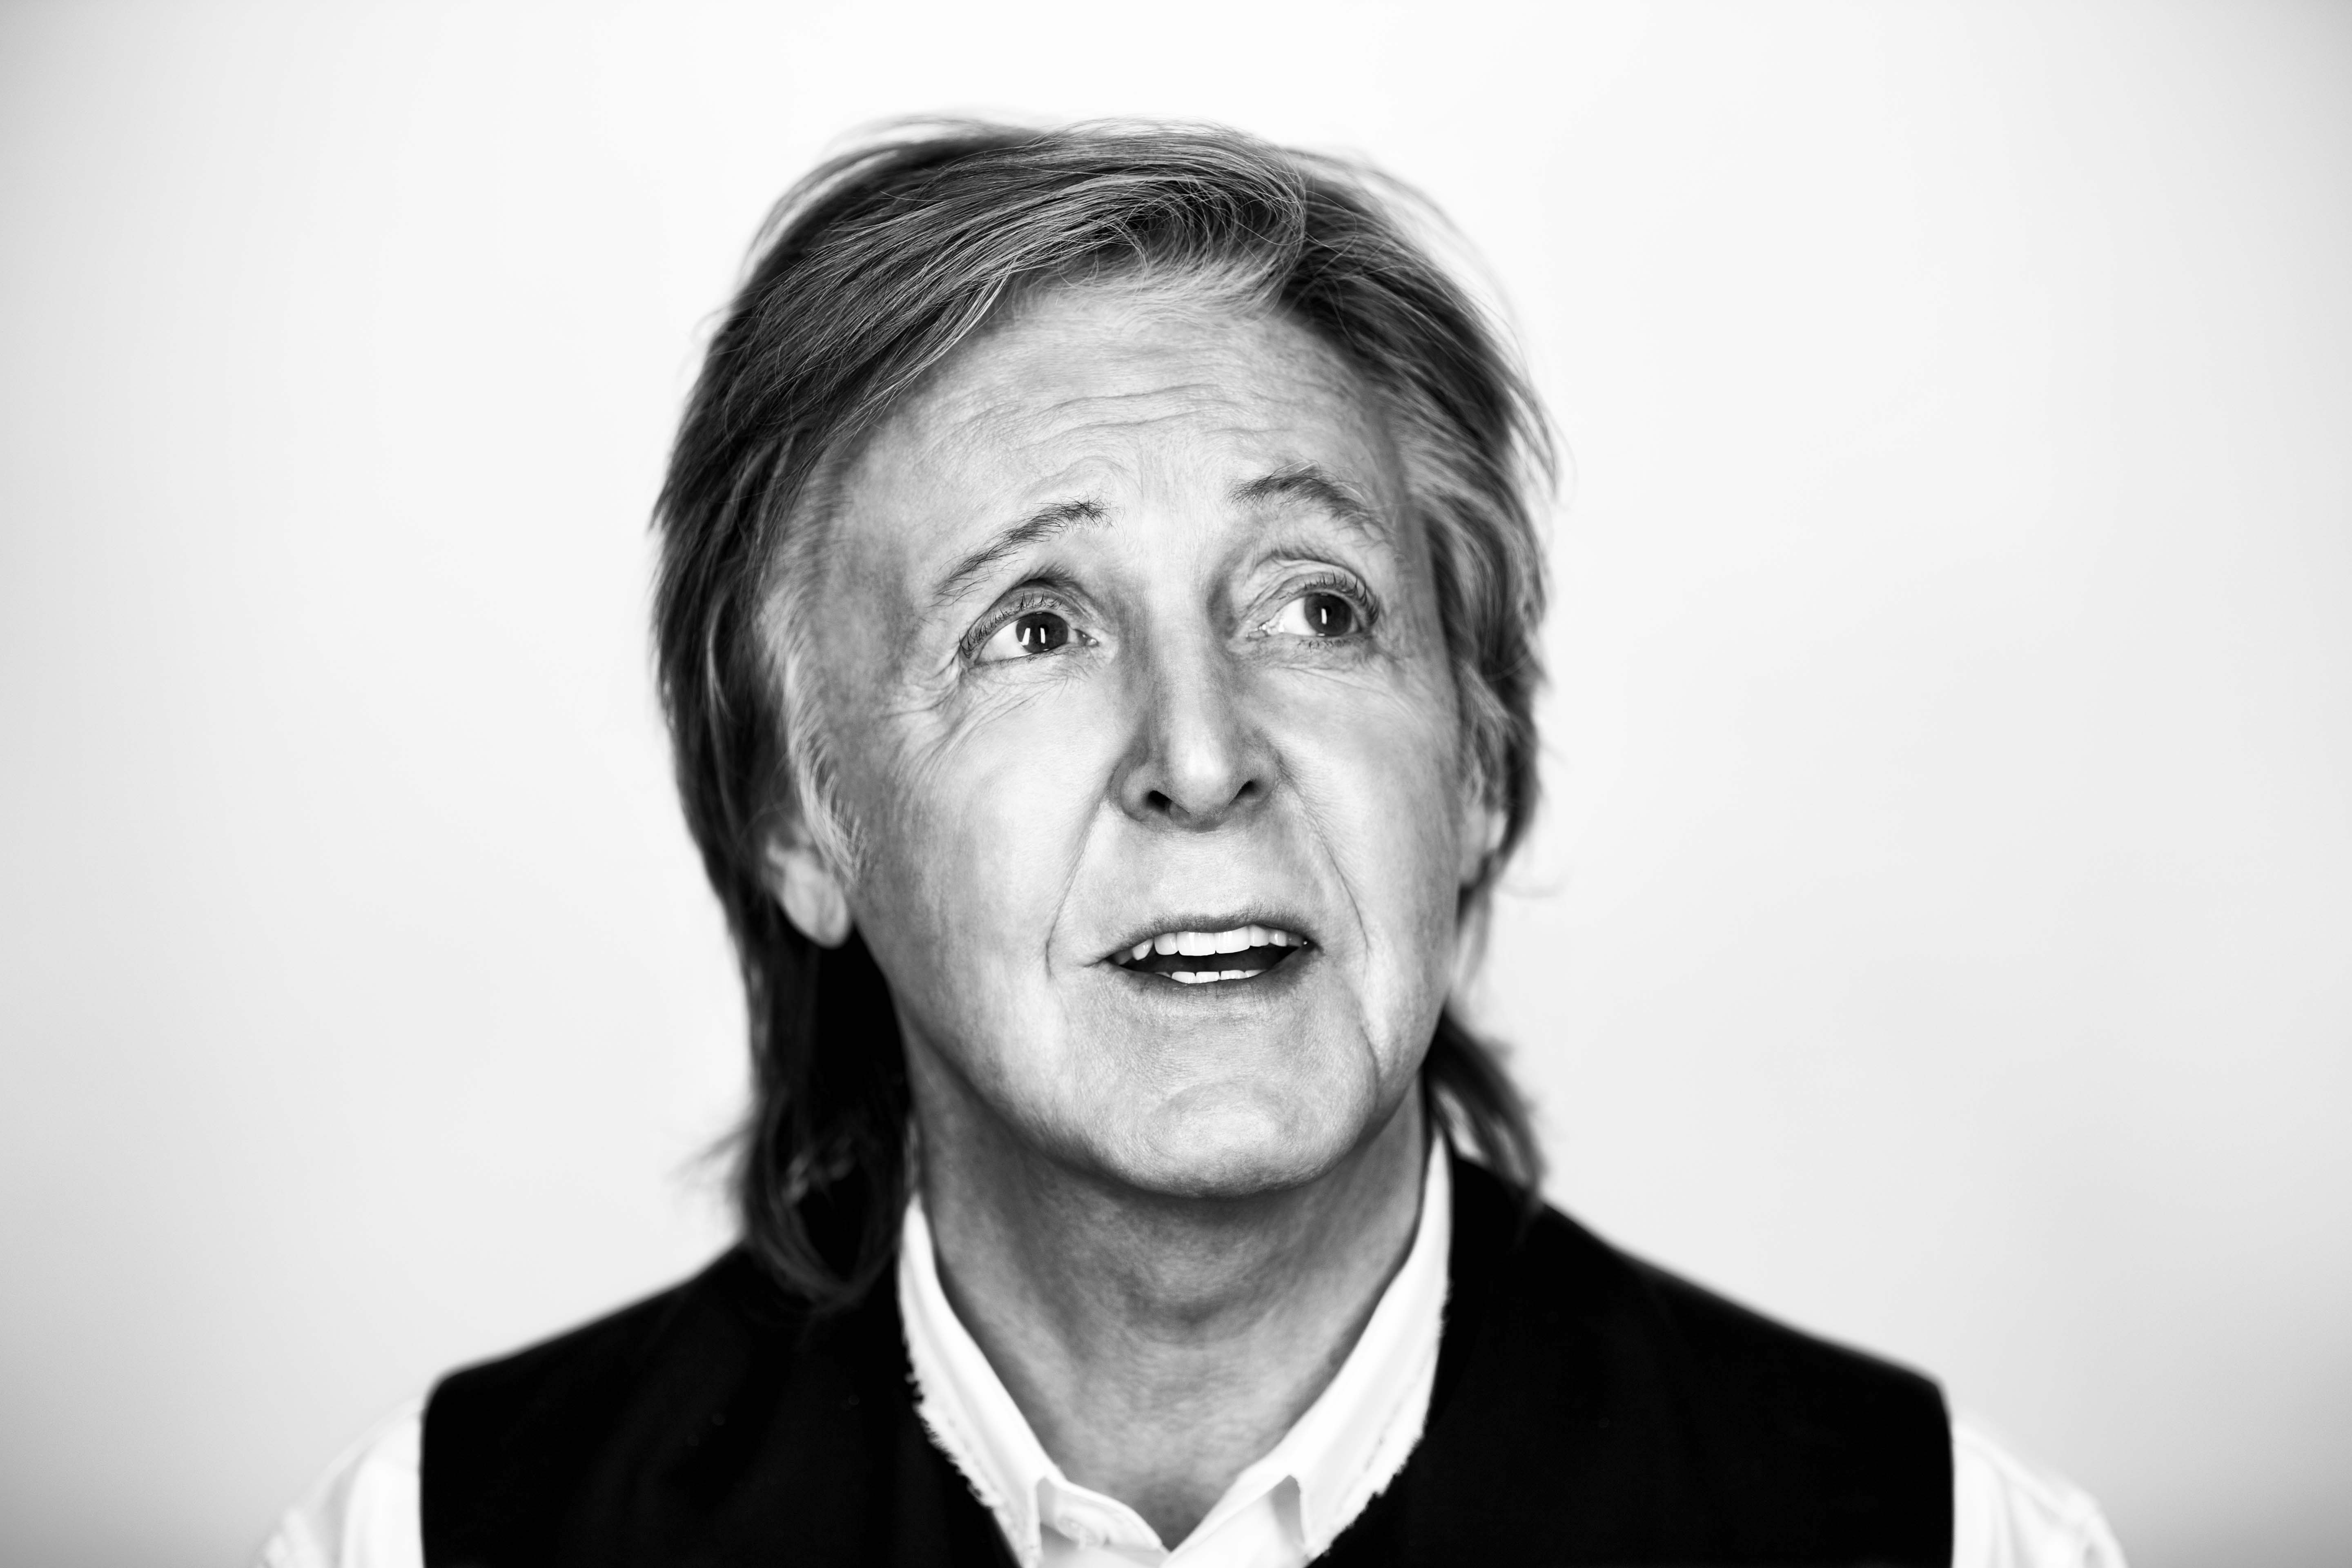 Paul McCartney, Musician